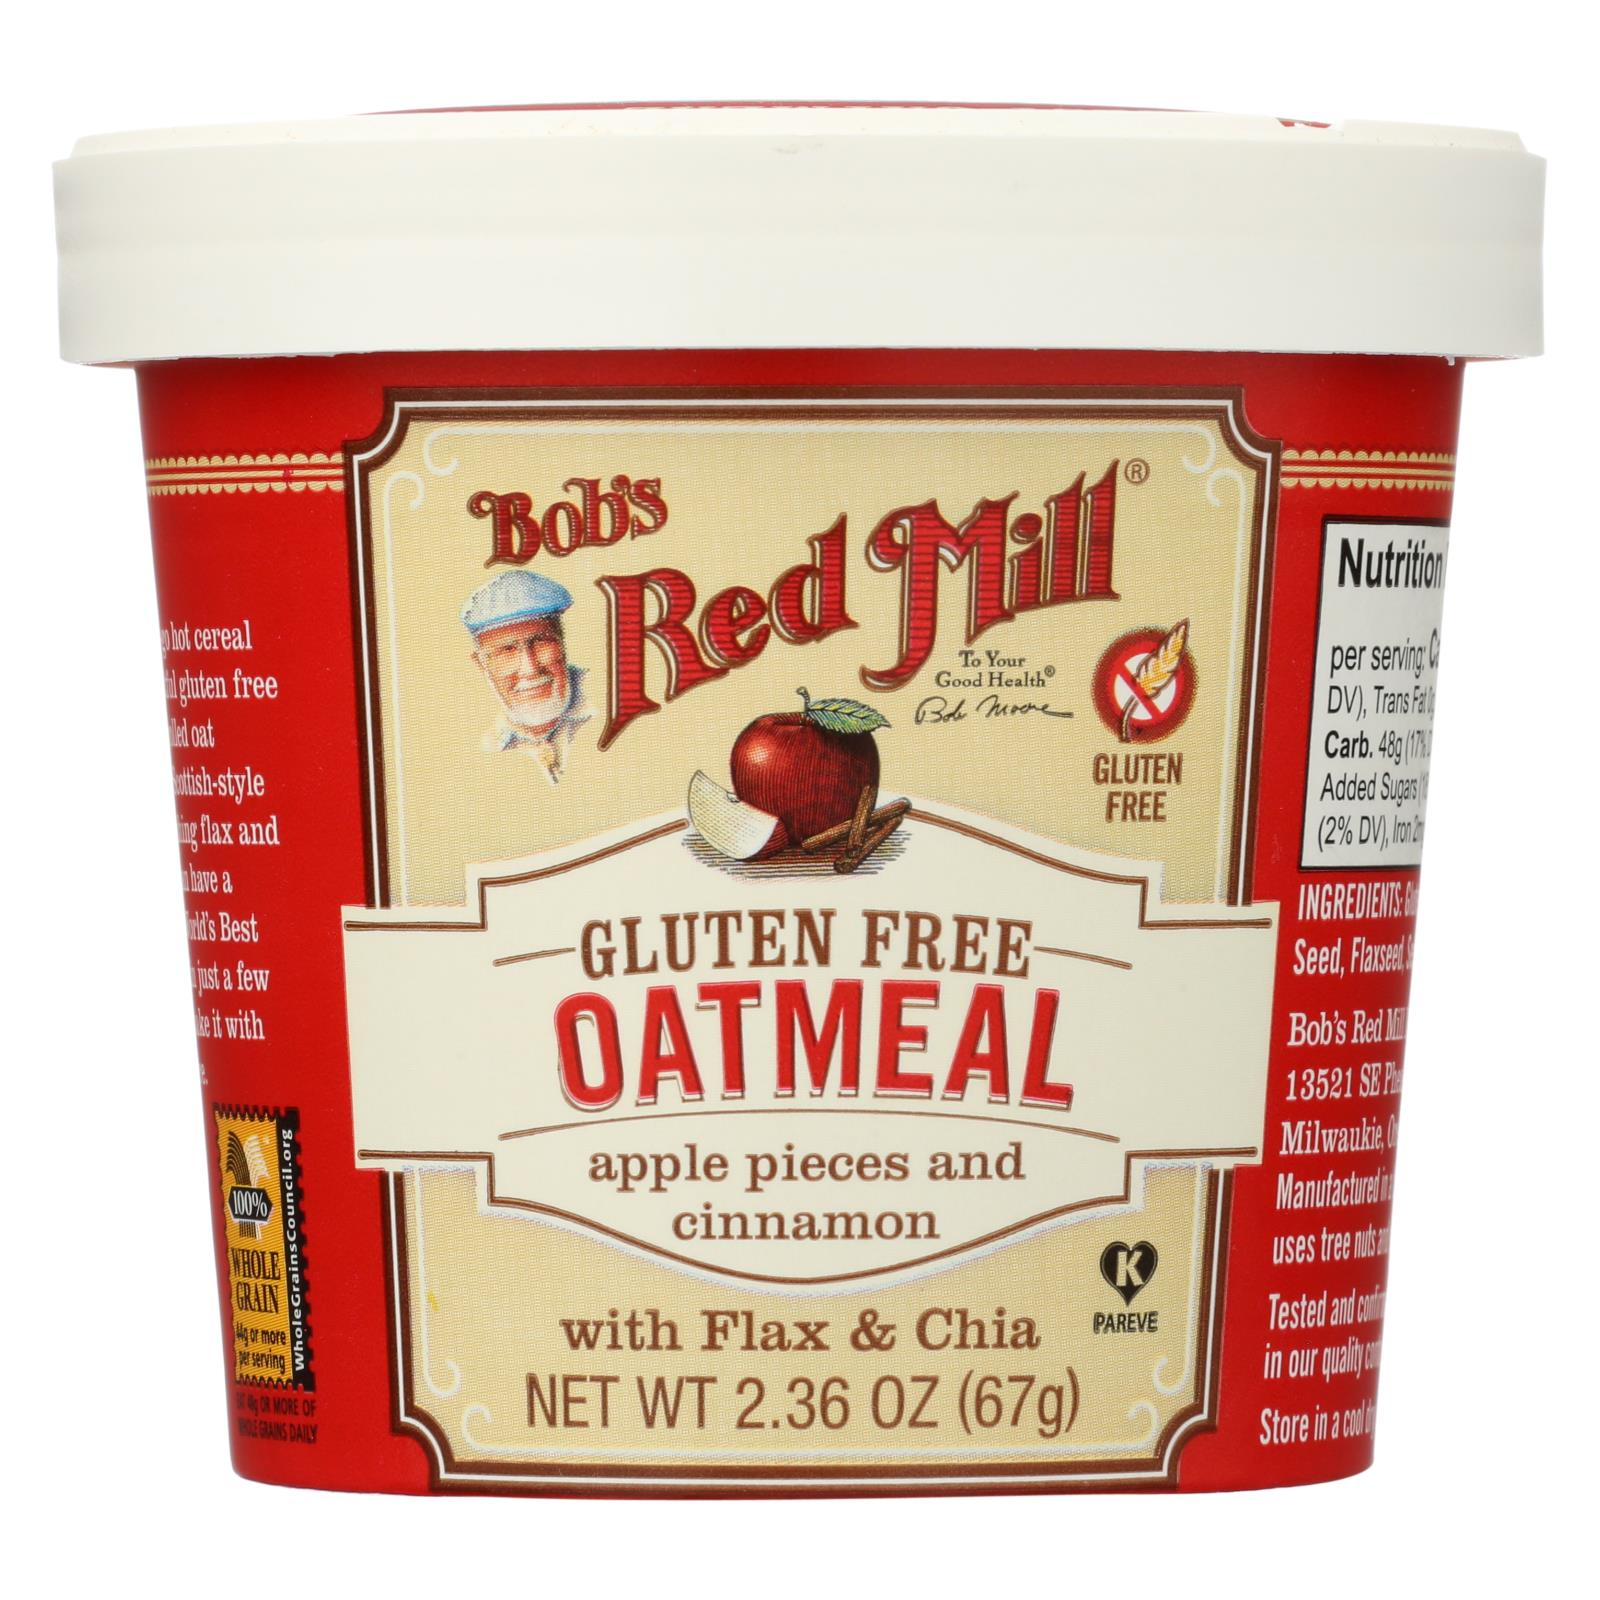 Bob's Red Mill Gluten Free Oatmeal Cup, Apple And Cinnamon - 2.36 Oz - Case Of 12 HG1770577